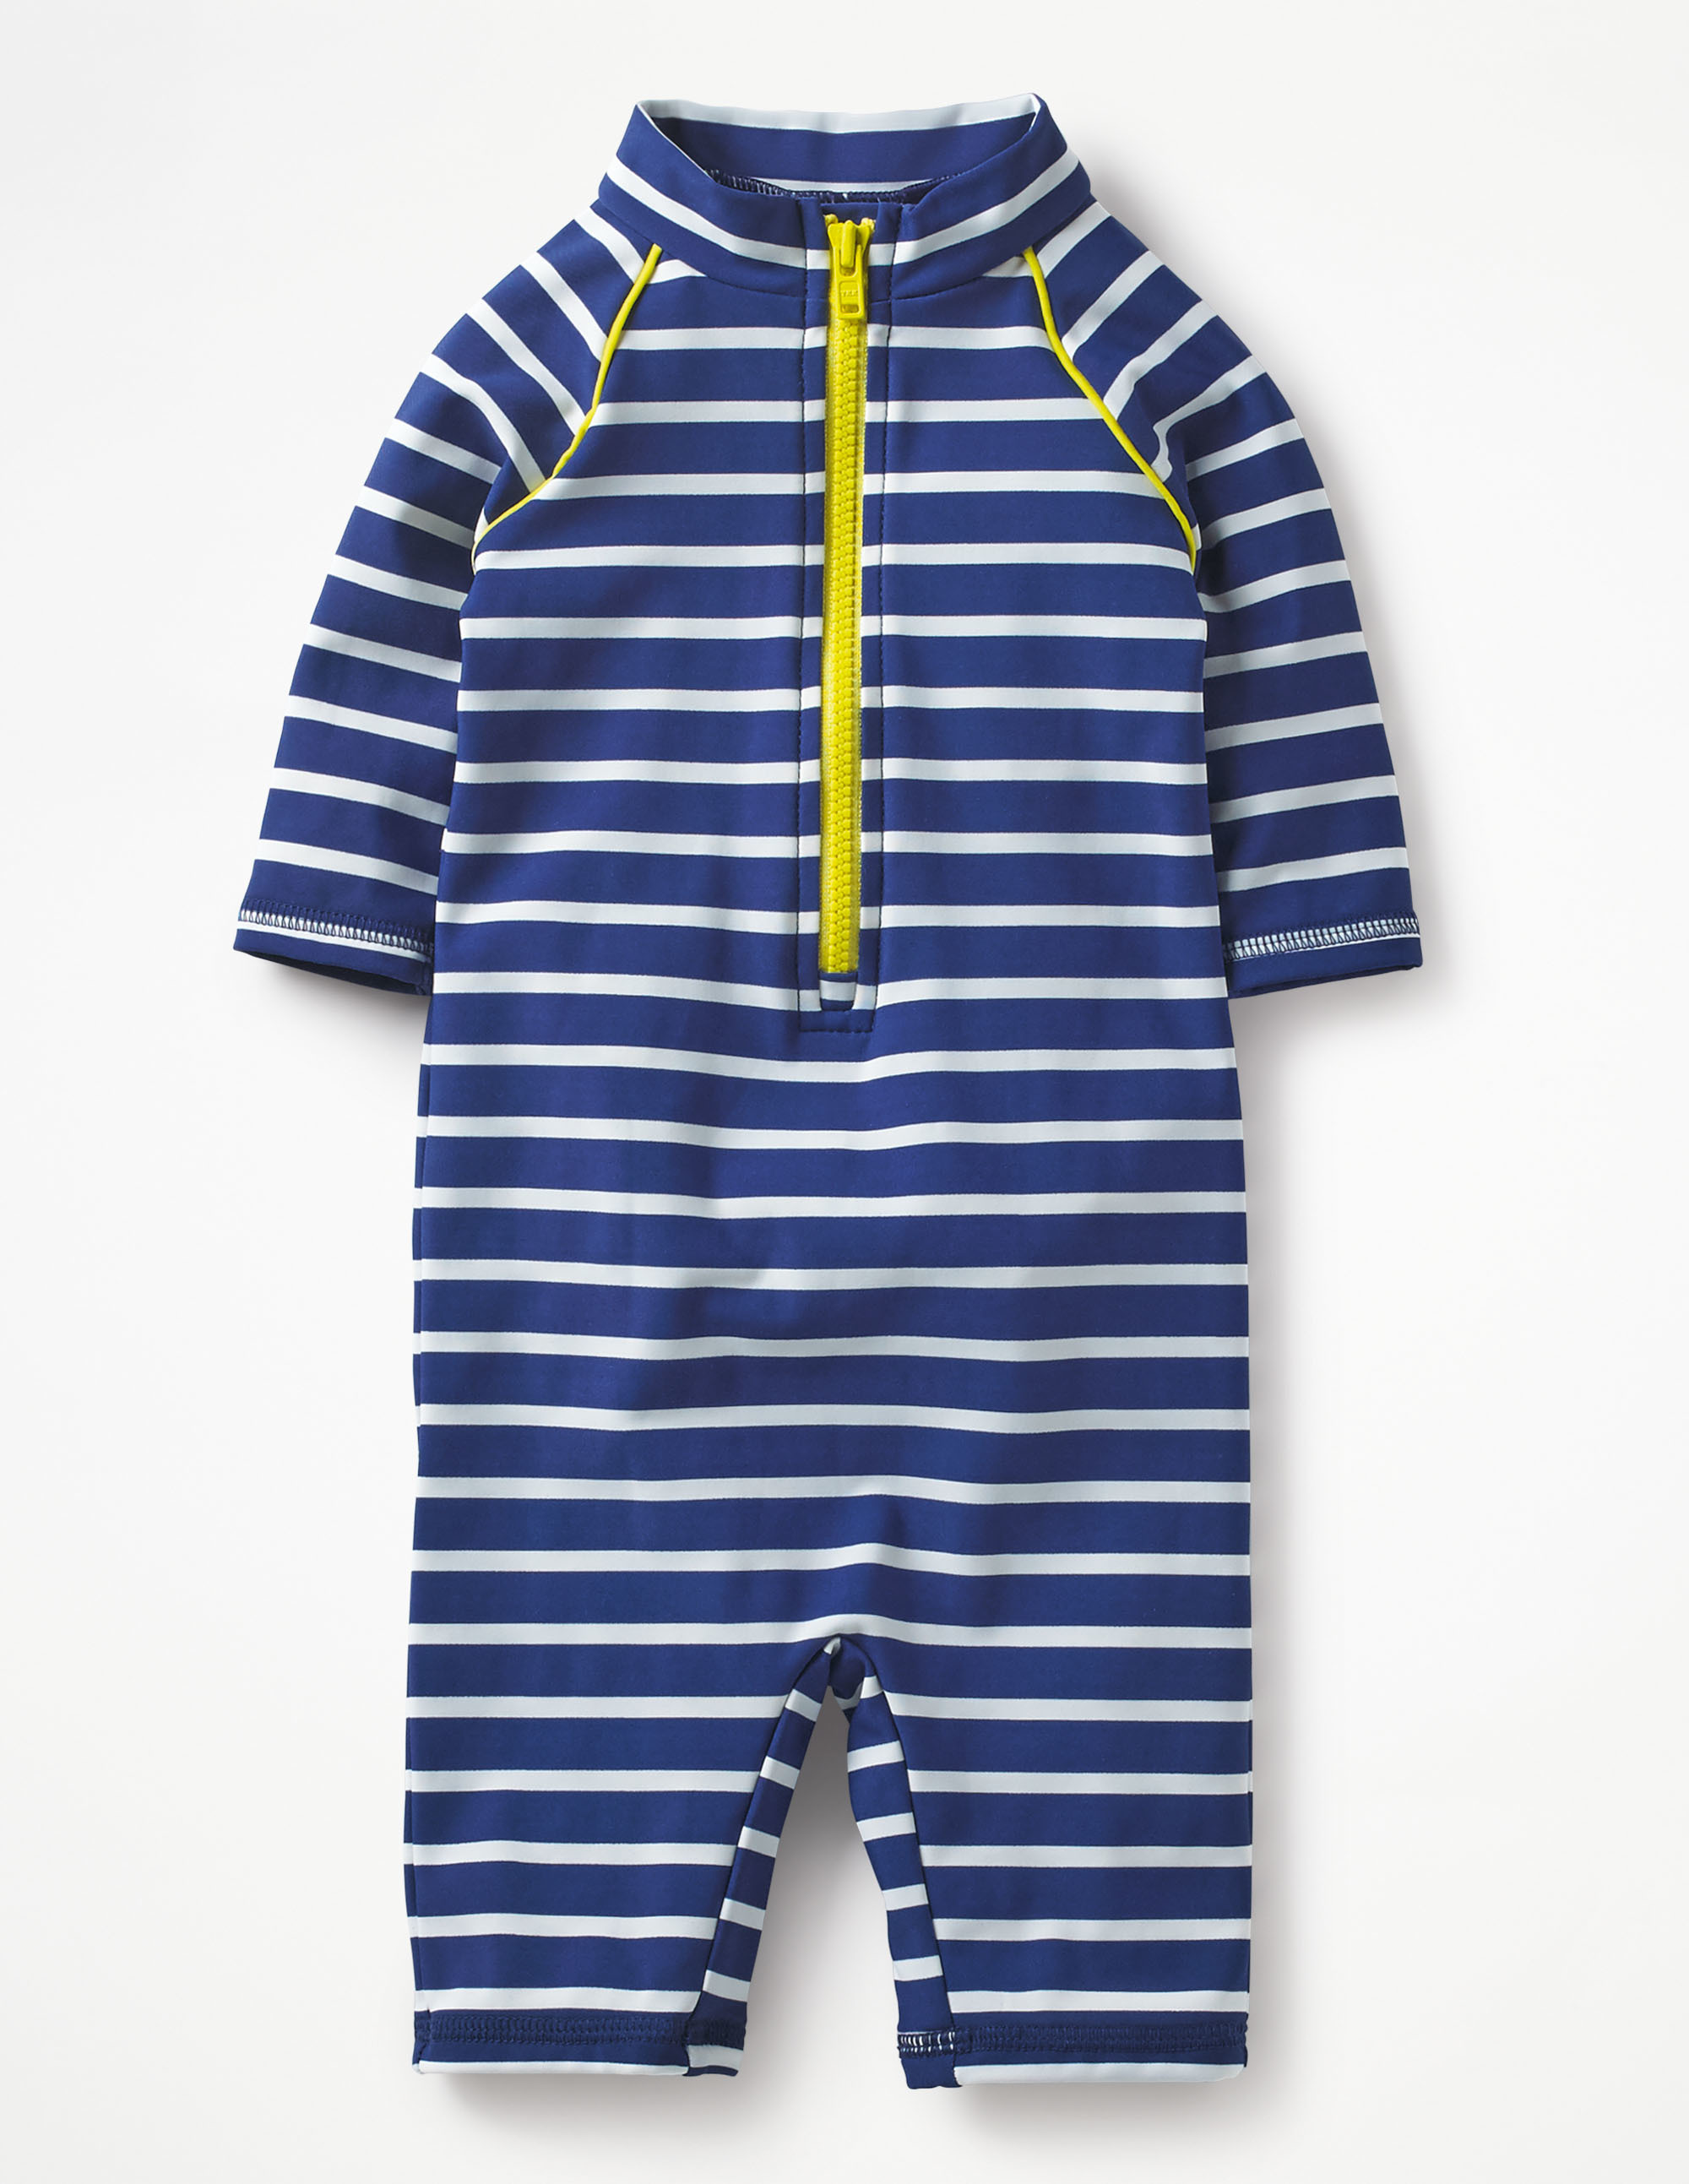 Surf suit by Boden